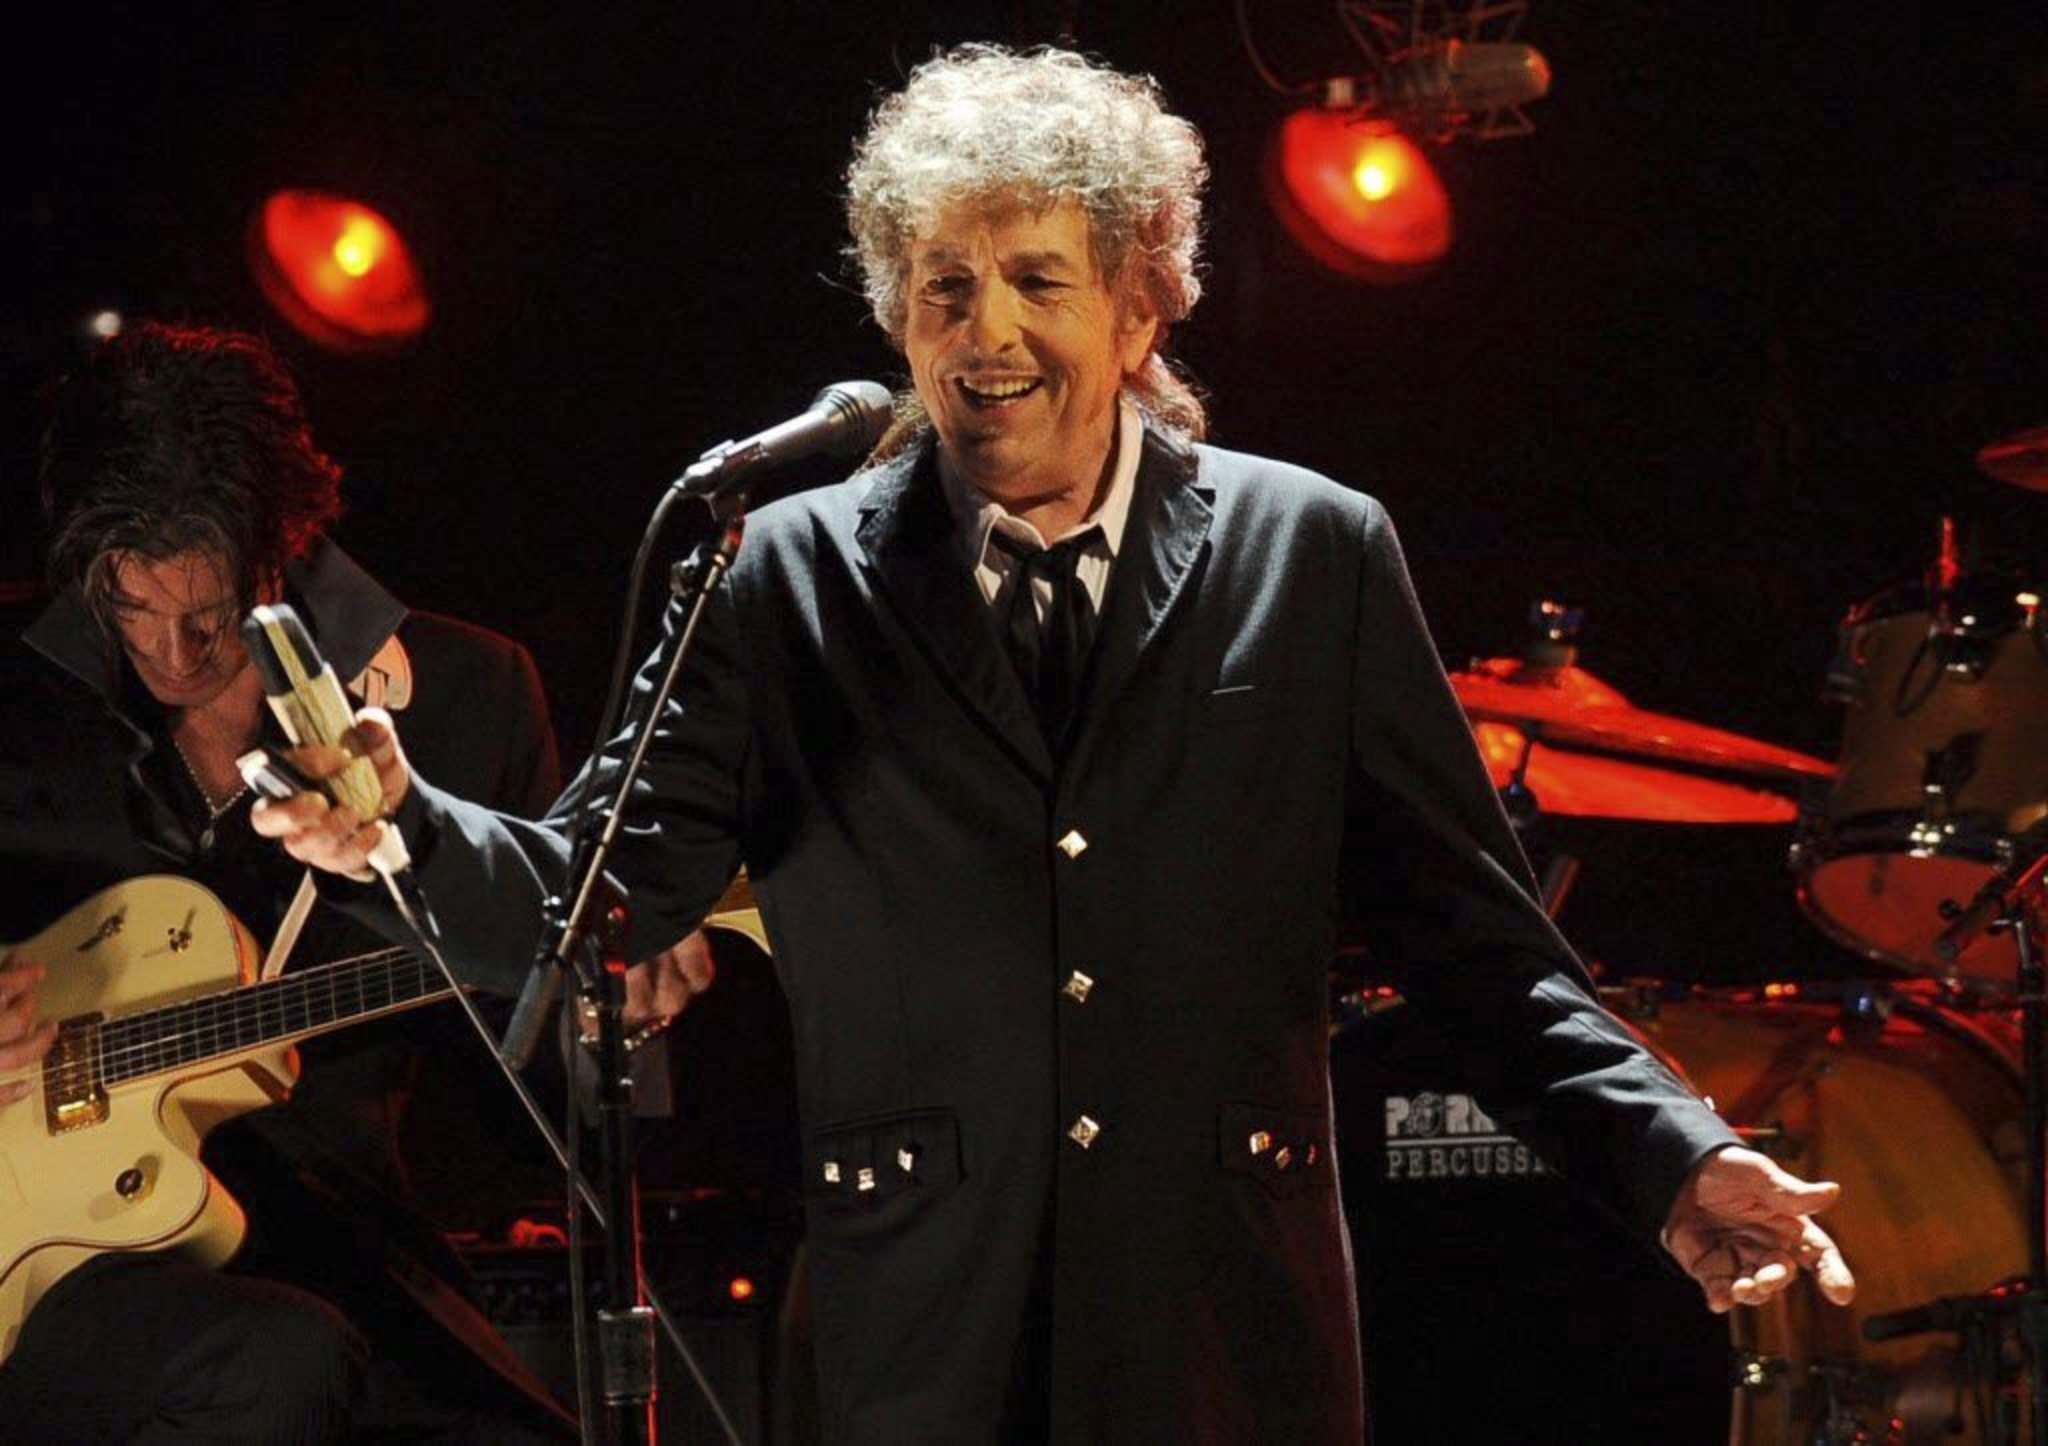 Trying to pin down the reasons why Bob Dylan's fans attend his concerts over and over is as complicated as the man himself. (Chris Pizzello / The Associated Press files)